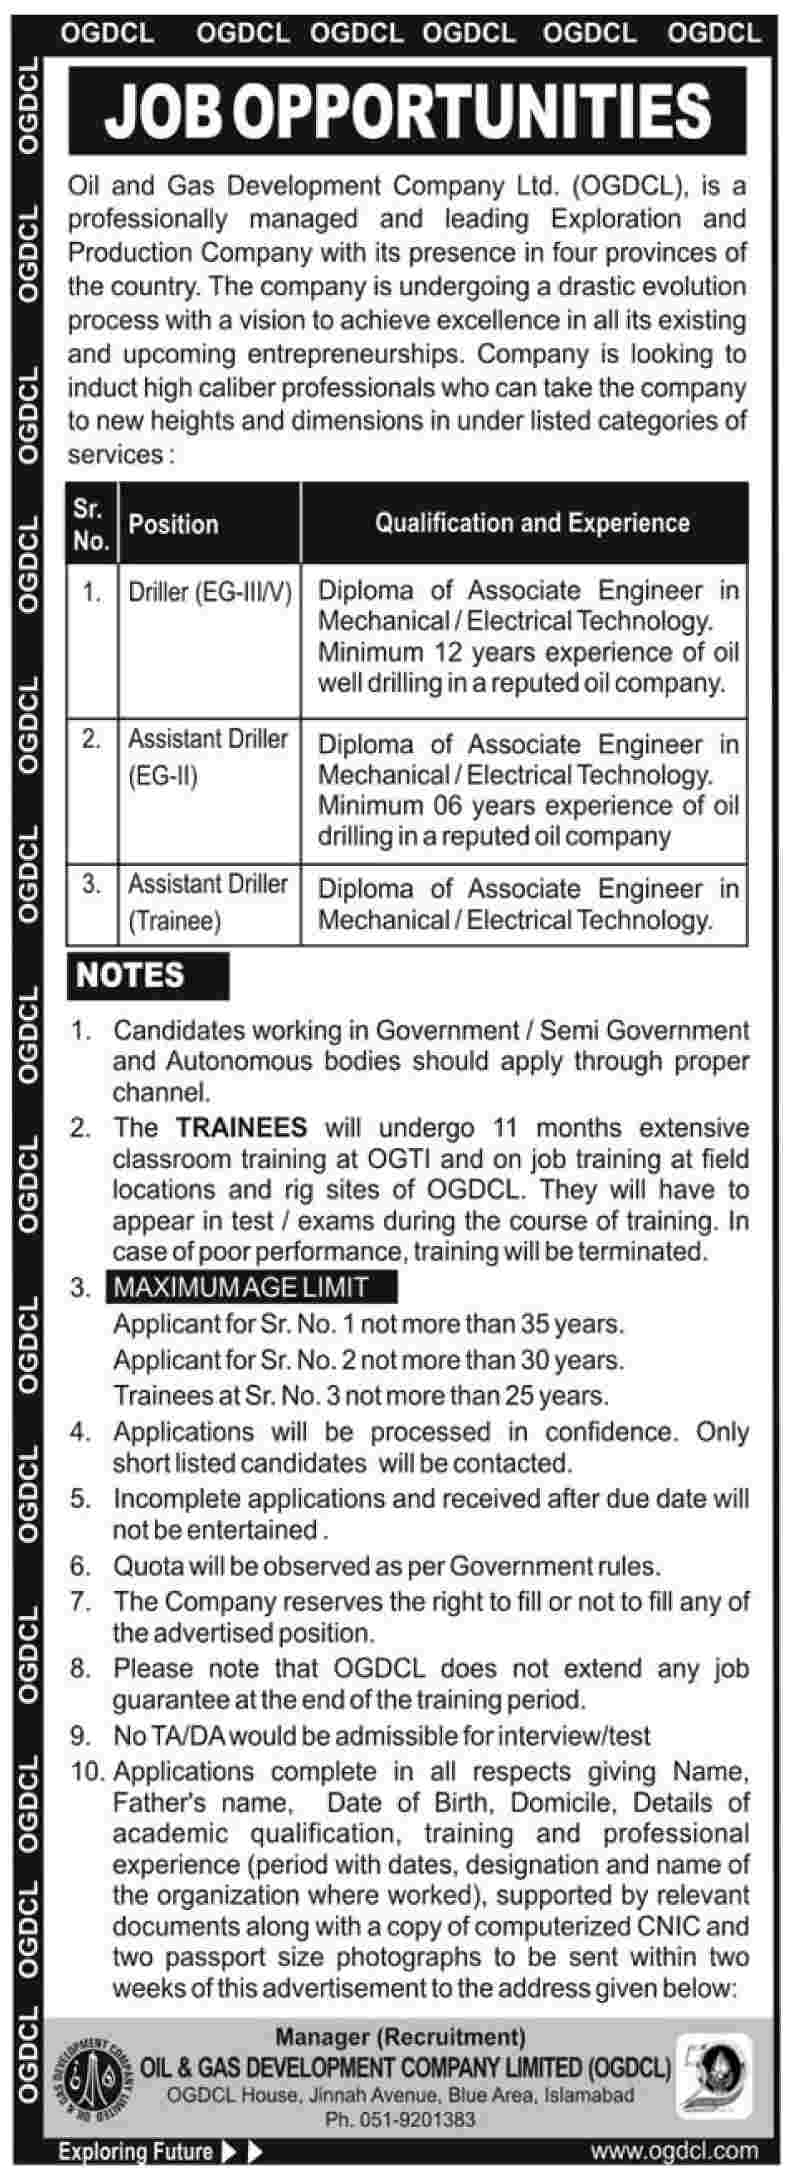 Jobs in Oil & Gas Development Company Limited (OGDCL)